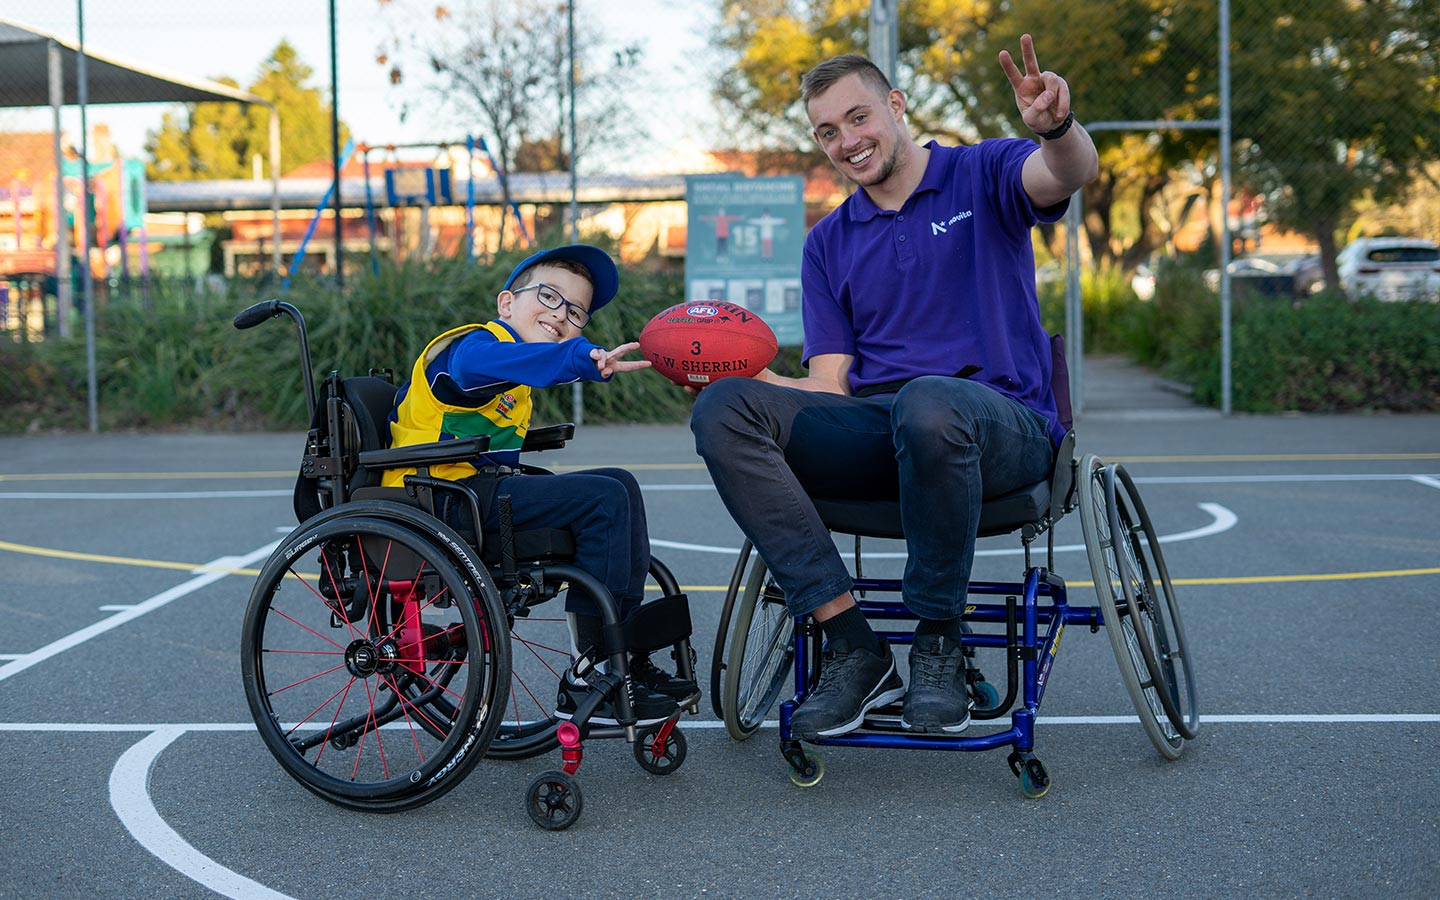 Young boy and man in wheelchairs, with the man holding a football